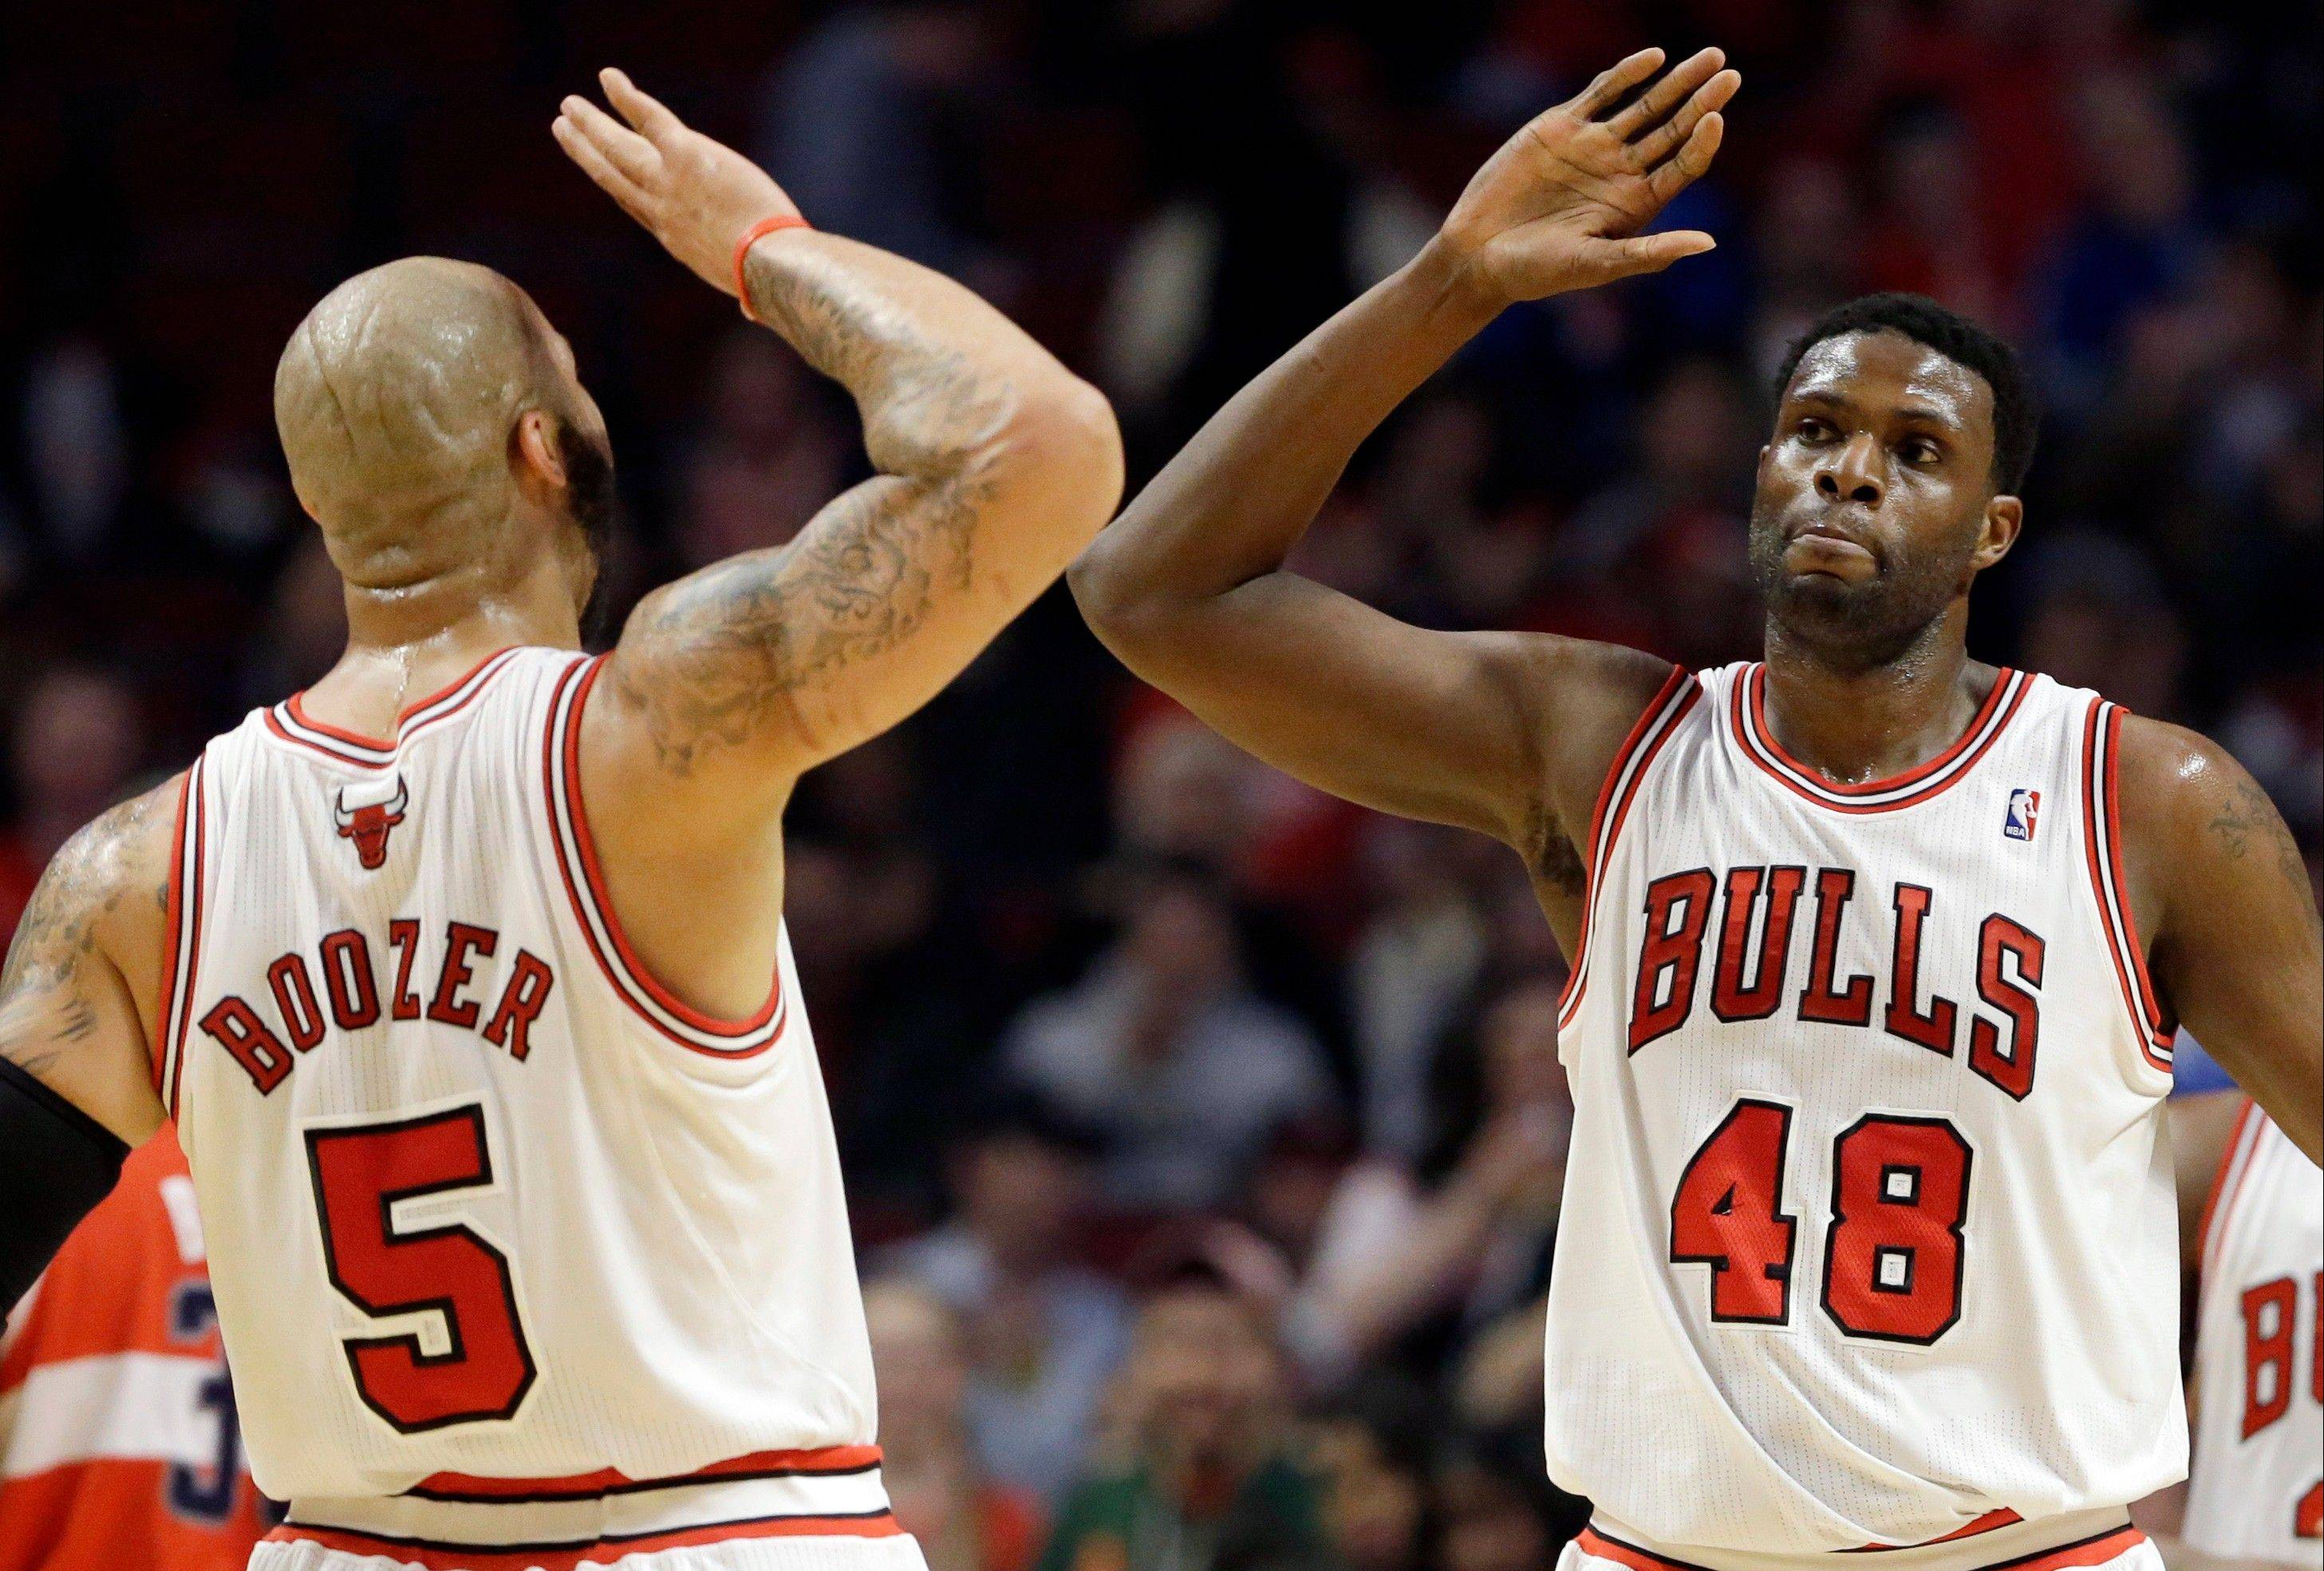 The Bulls' Nazr Mohammed, right, and Carlos Boozer celebrate during the regular-season finale Wednesday at the United Center. Mohammed scored a season-high 17 points in just 22 minutes of action.